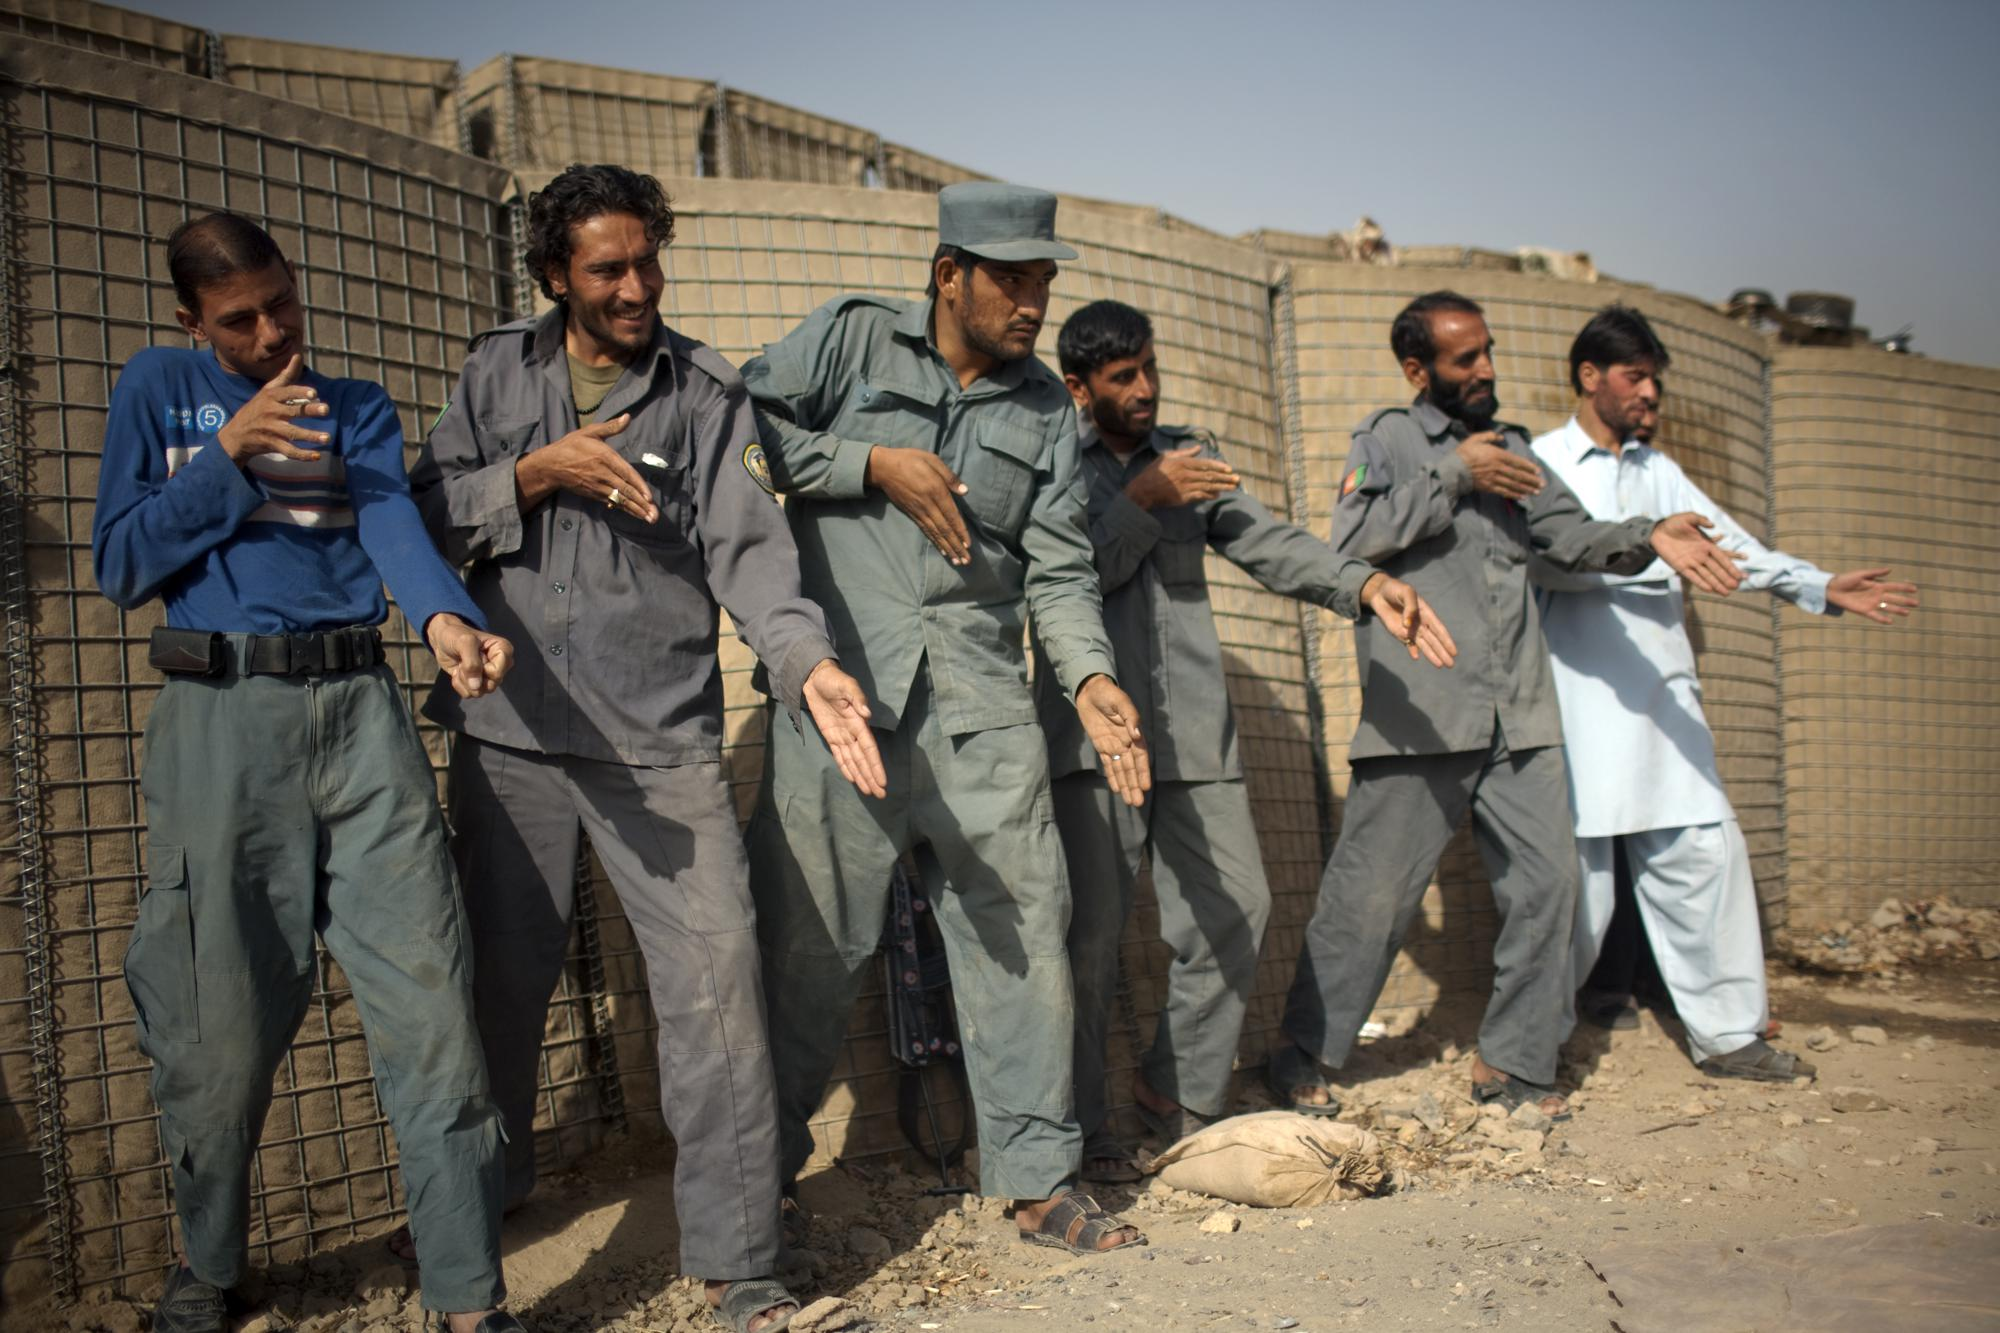 fghan_policemen_simulate_weapons_orientation_during_a_training_session_with_u_s_soldiers_2010.jpeg